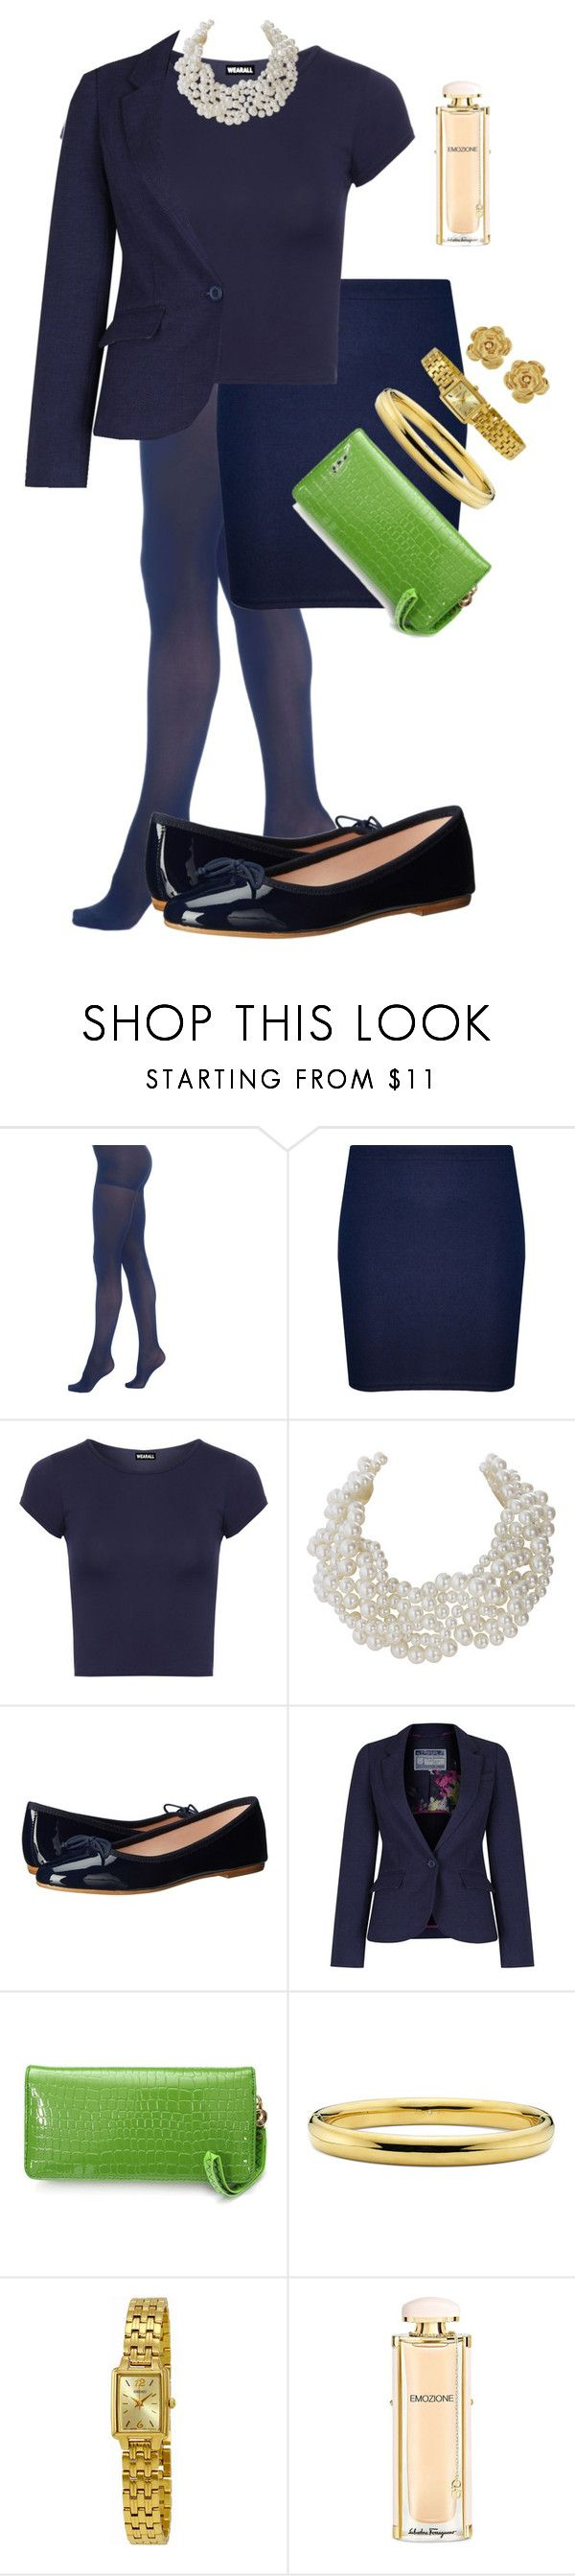 """""""Spring Style"""" by wardrobepieces on Polyvore featuring Berkshire, WearAll, Humble Chic, Summit by White Mountain, Joules, Seiko, Salvatore Ferragamo and Vintage"""